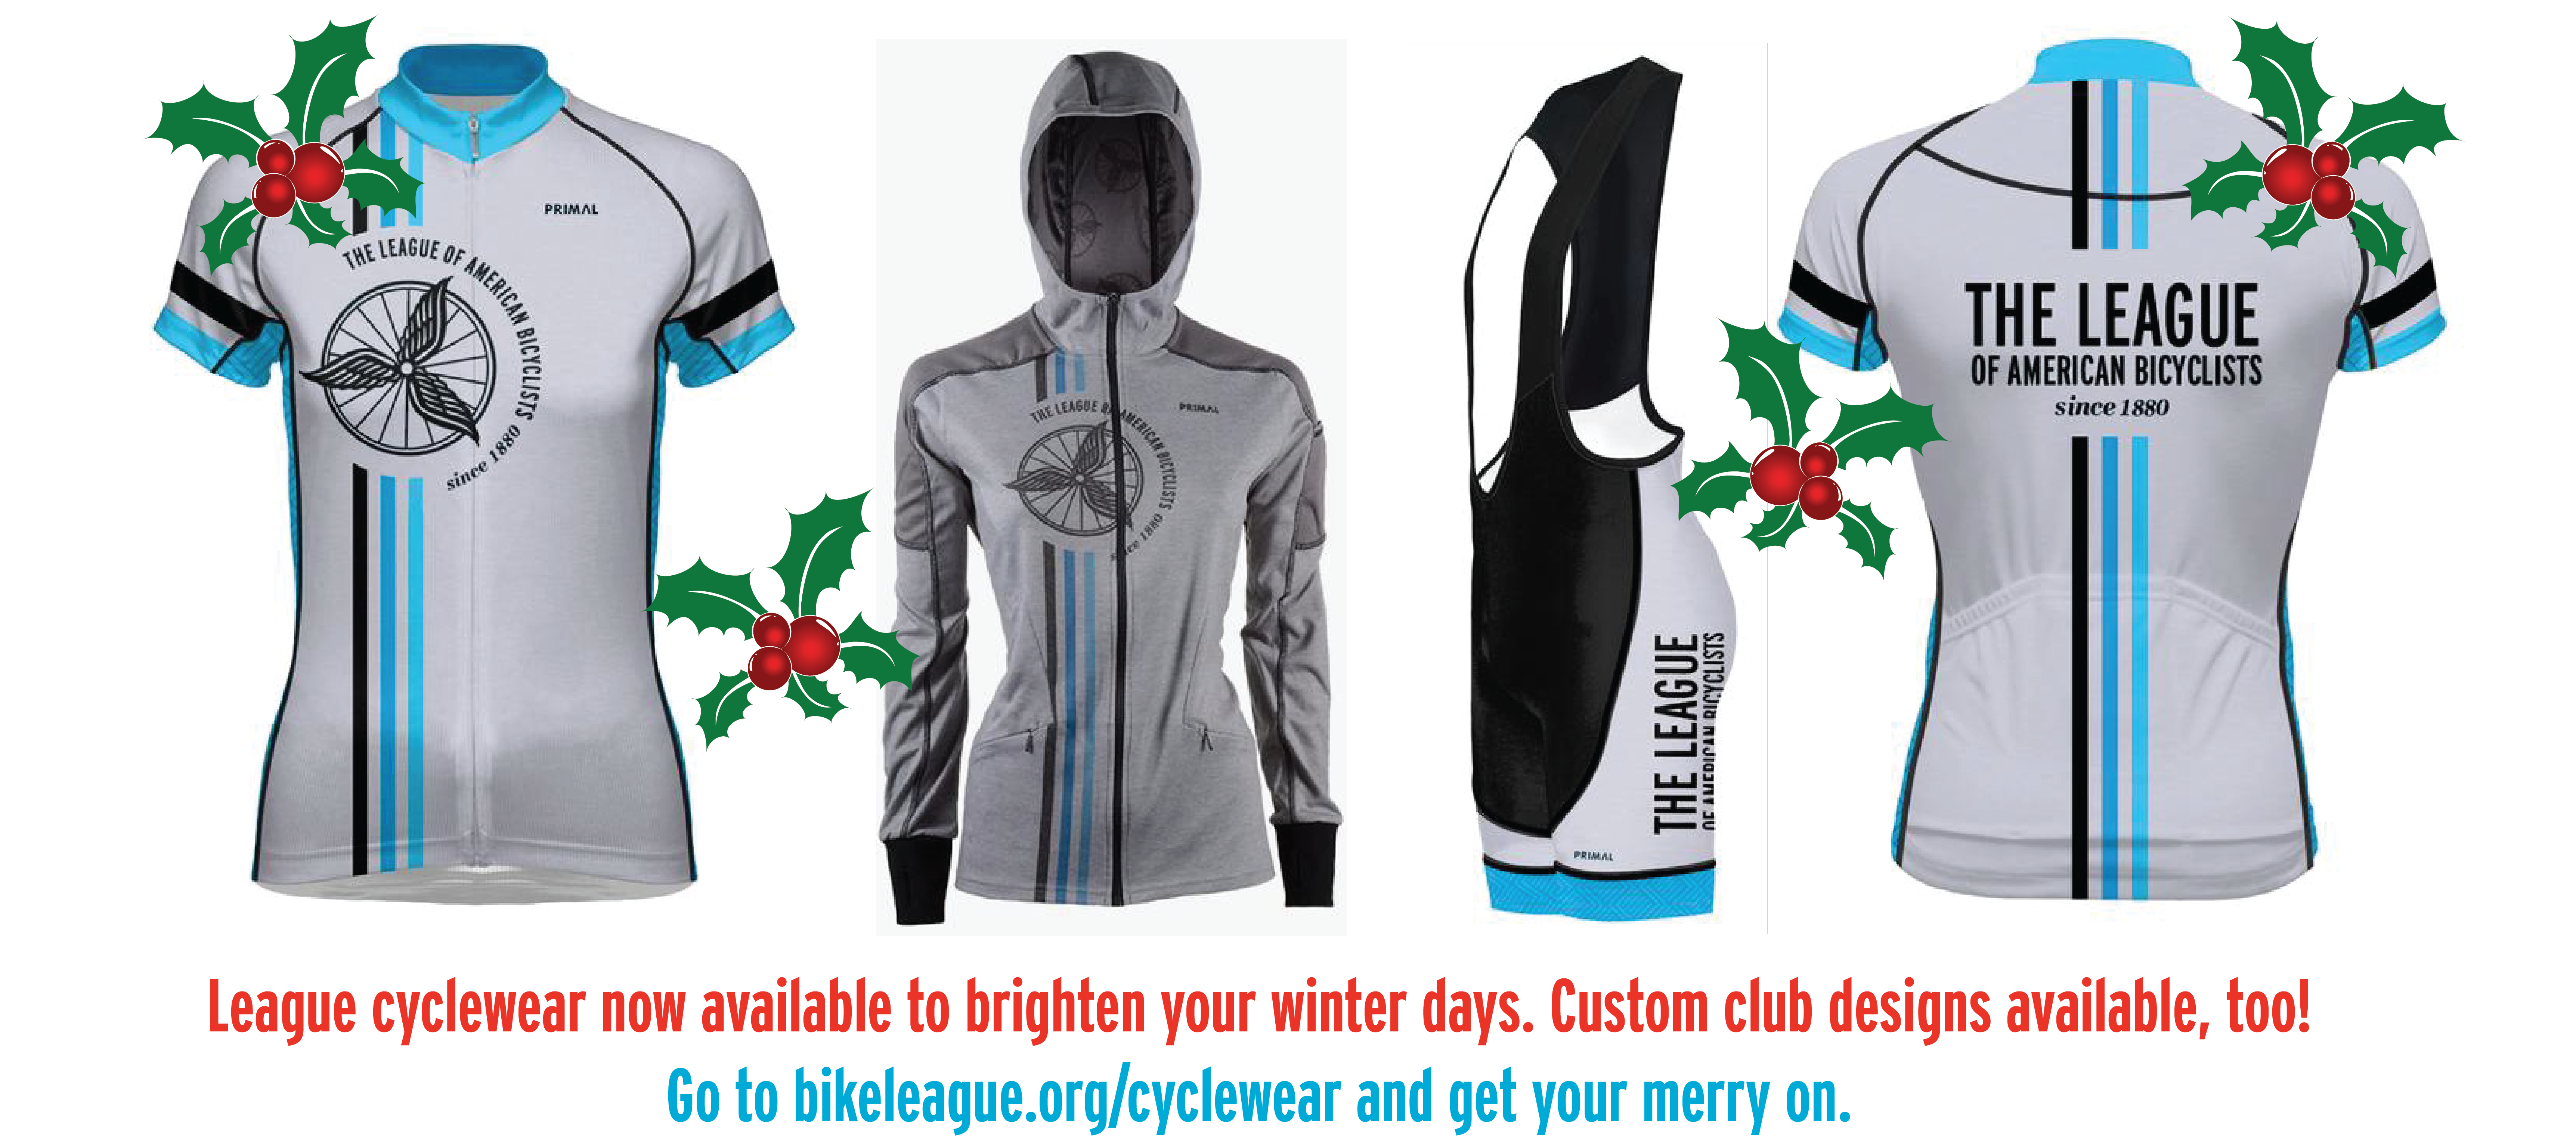 League Cyclewear now available from Primal Wear  cf7072479